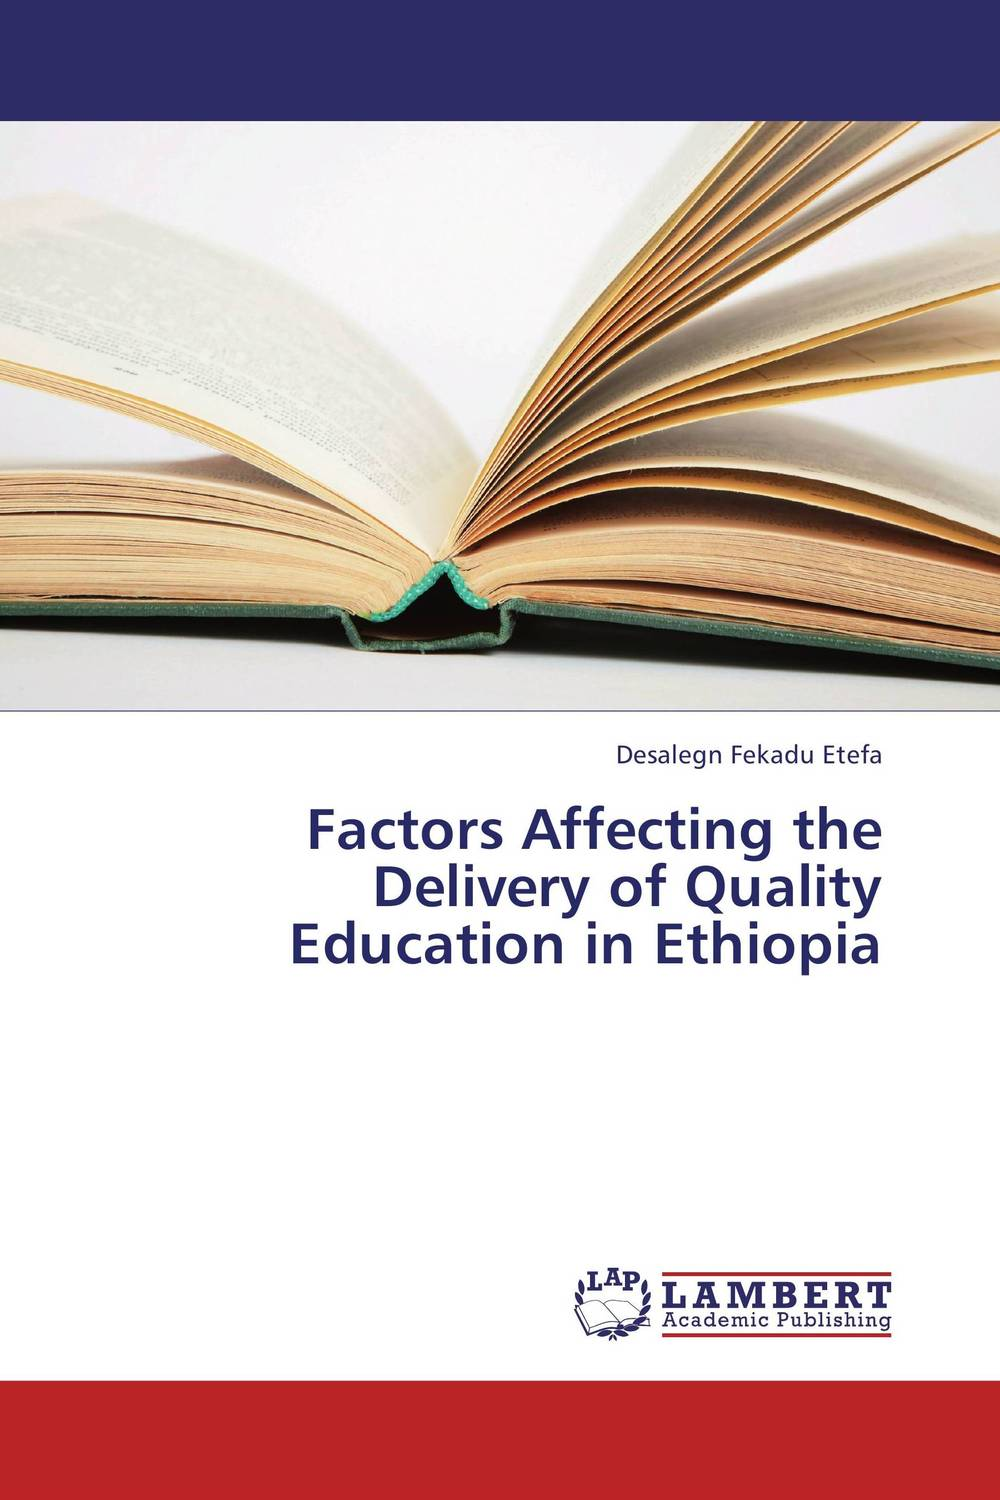 все цены на  Factors Affecting the Delivery of Quality   Education in Ethiopia  онлайн